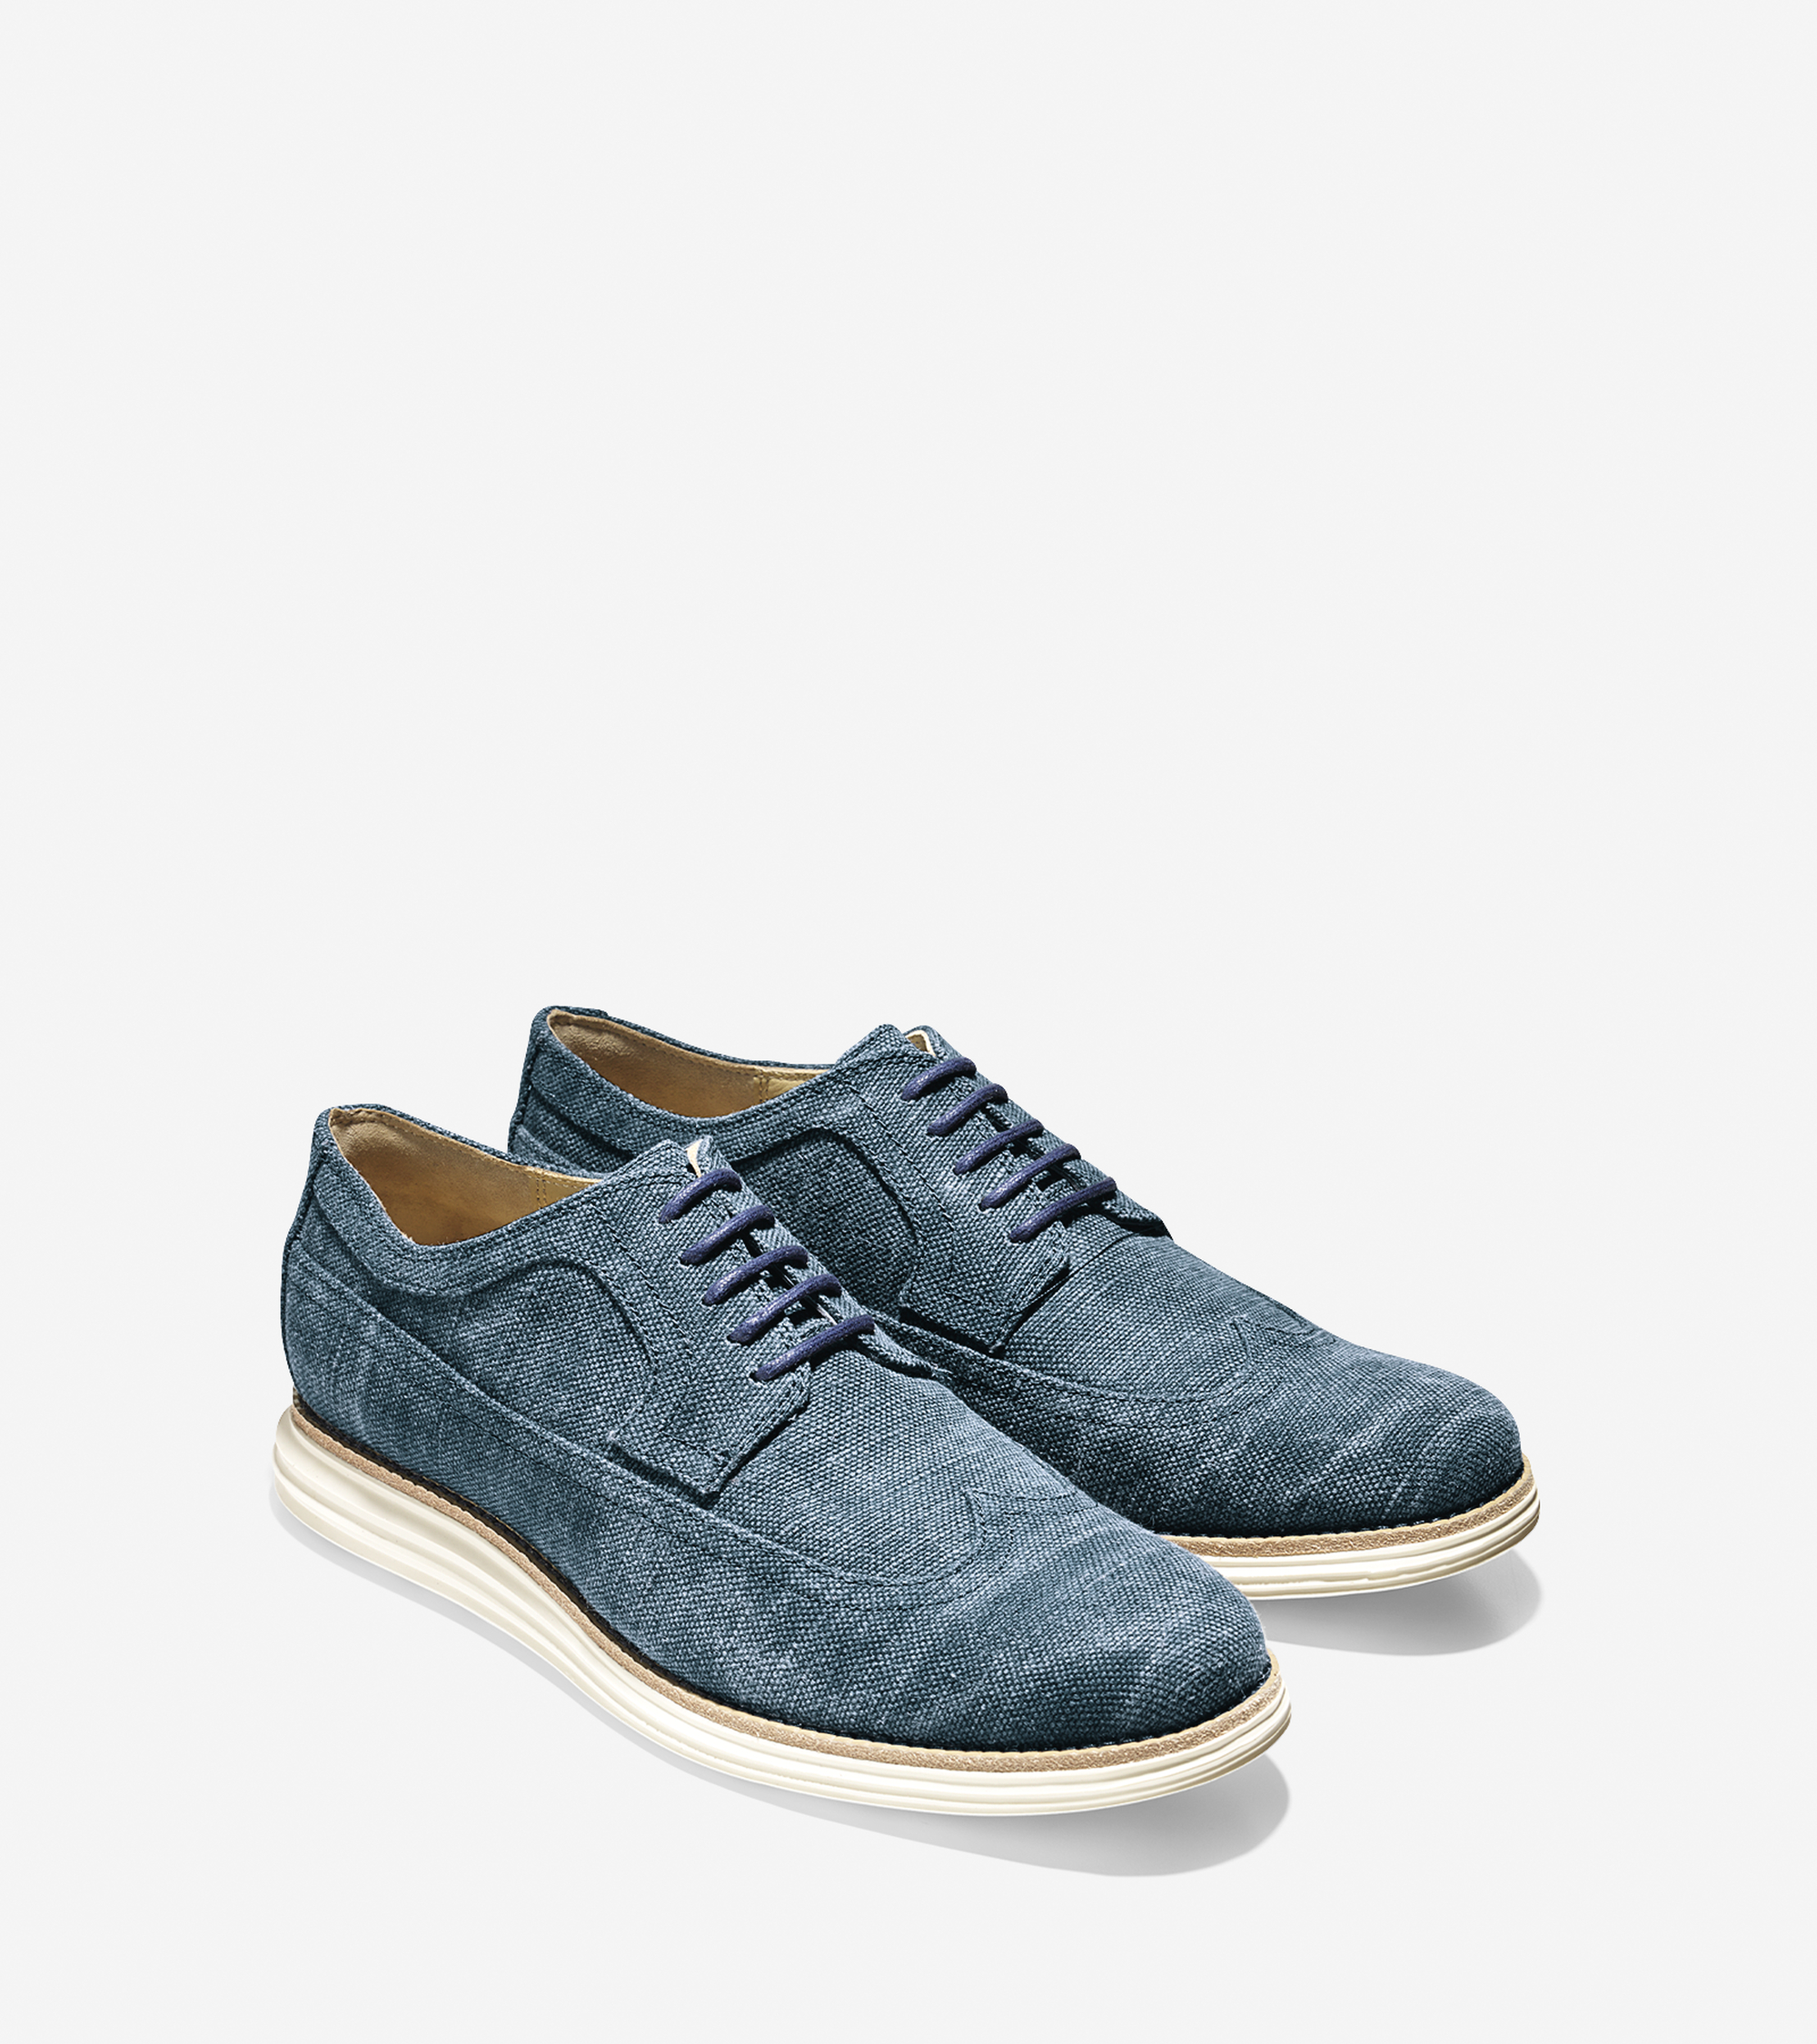 cole haan lunargrand wingtip oxford in blue for